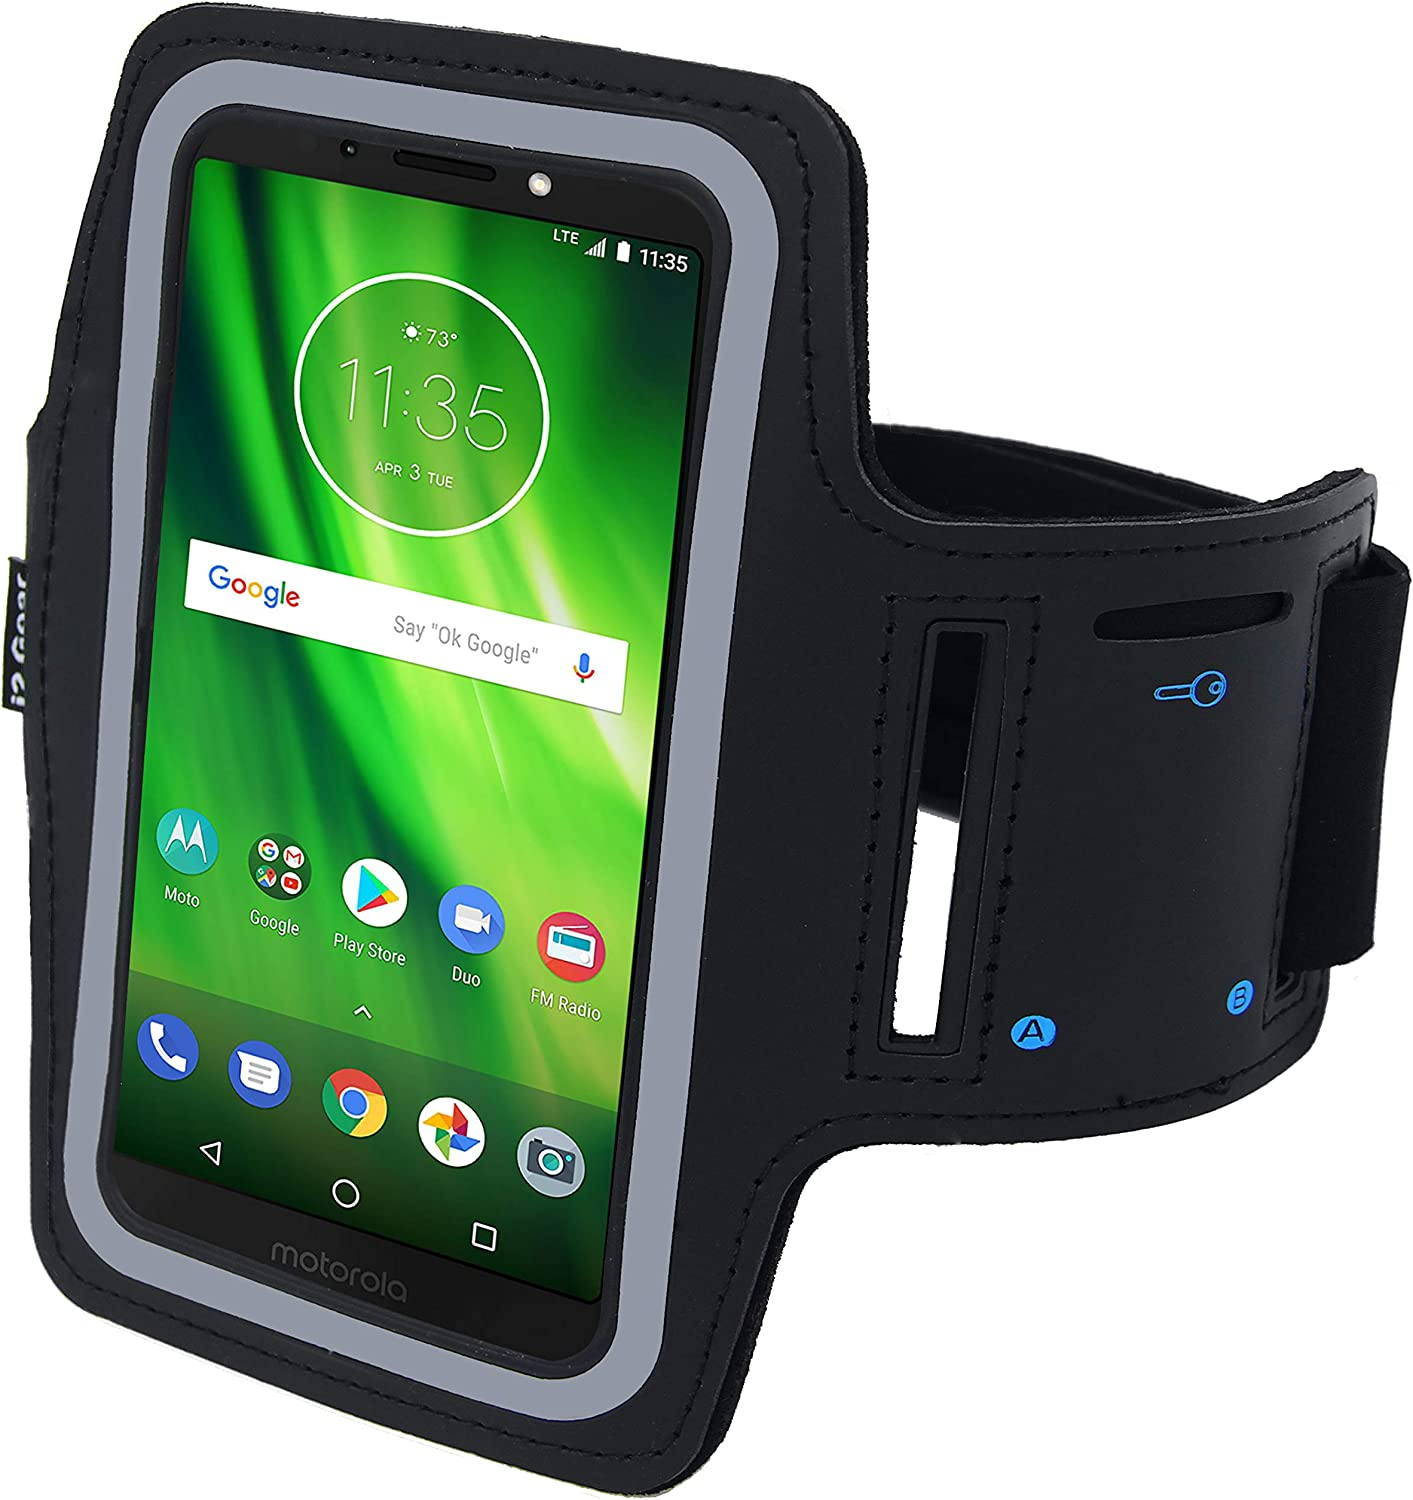 i2 Gear Cell Phone Armband Case for Running - Workout Phone Holder with Adjustable Arm Band, Reflective - XL fits Moto One Power P30, Moto G7, G6, G6 Play, G4 Plus, Moto Z3, Z, Z Play, E5